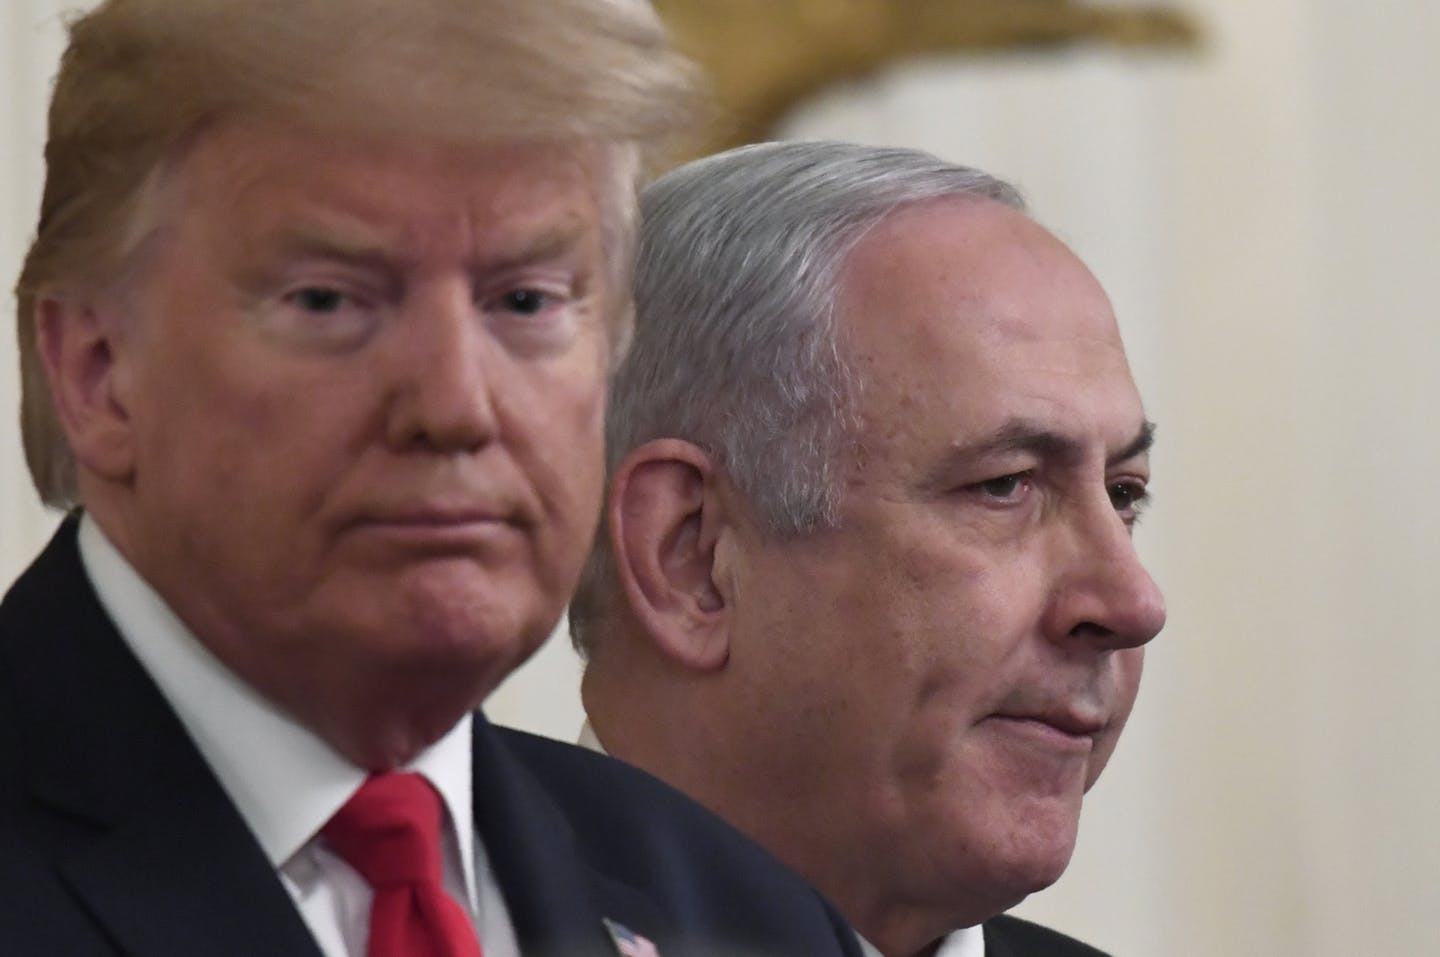 Has Trump proposed a Middle East peace plan – or terms of surrender for the Palestinians?